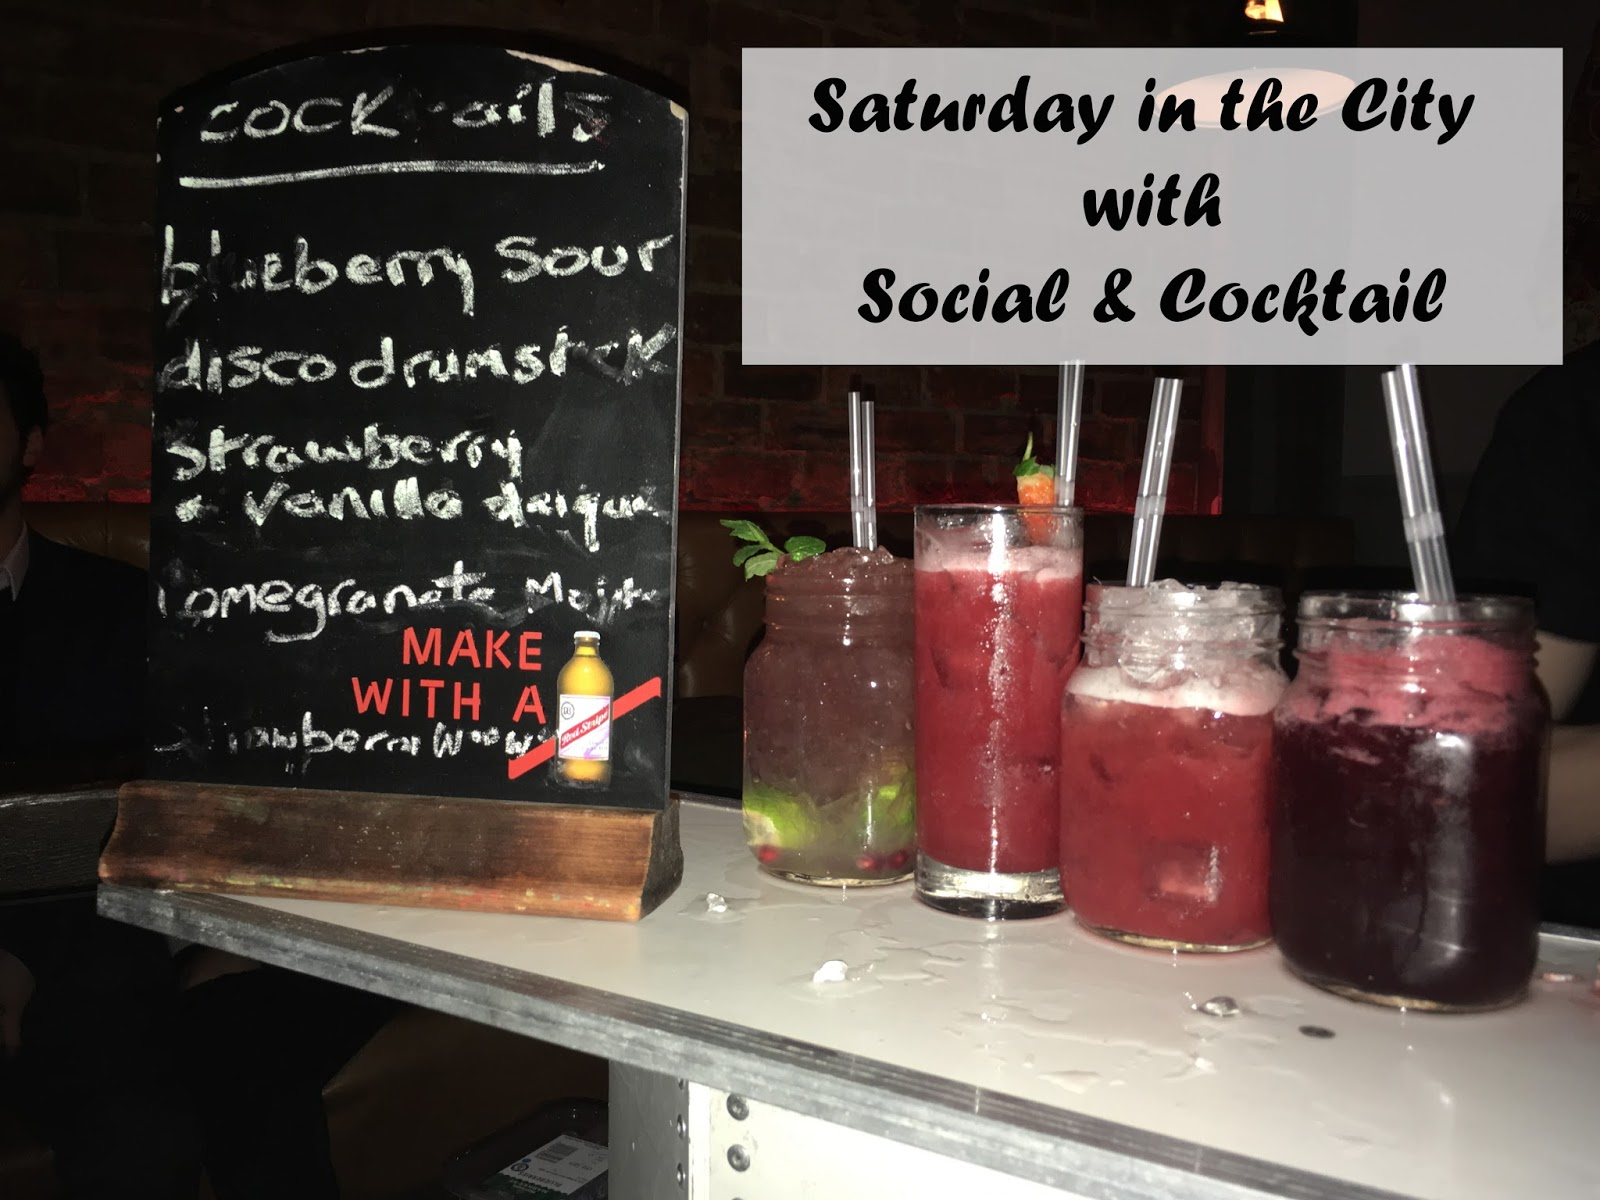 Saturday in the City with Social and Cocktail